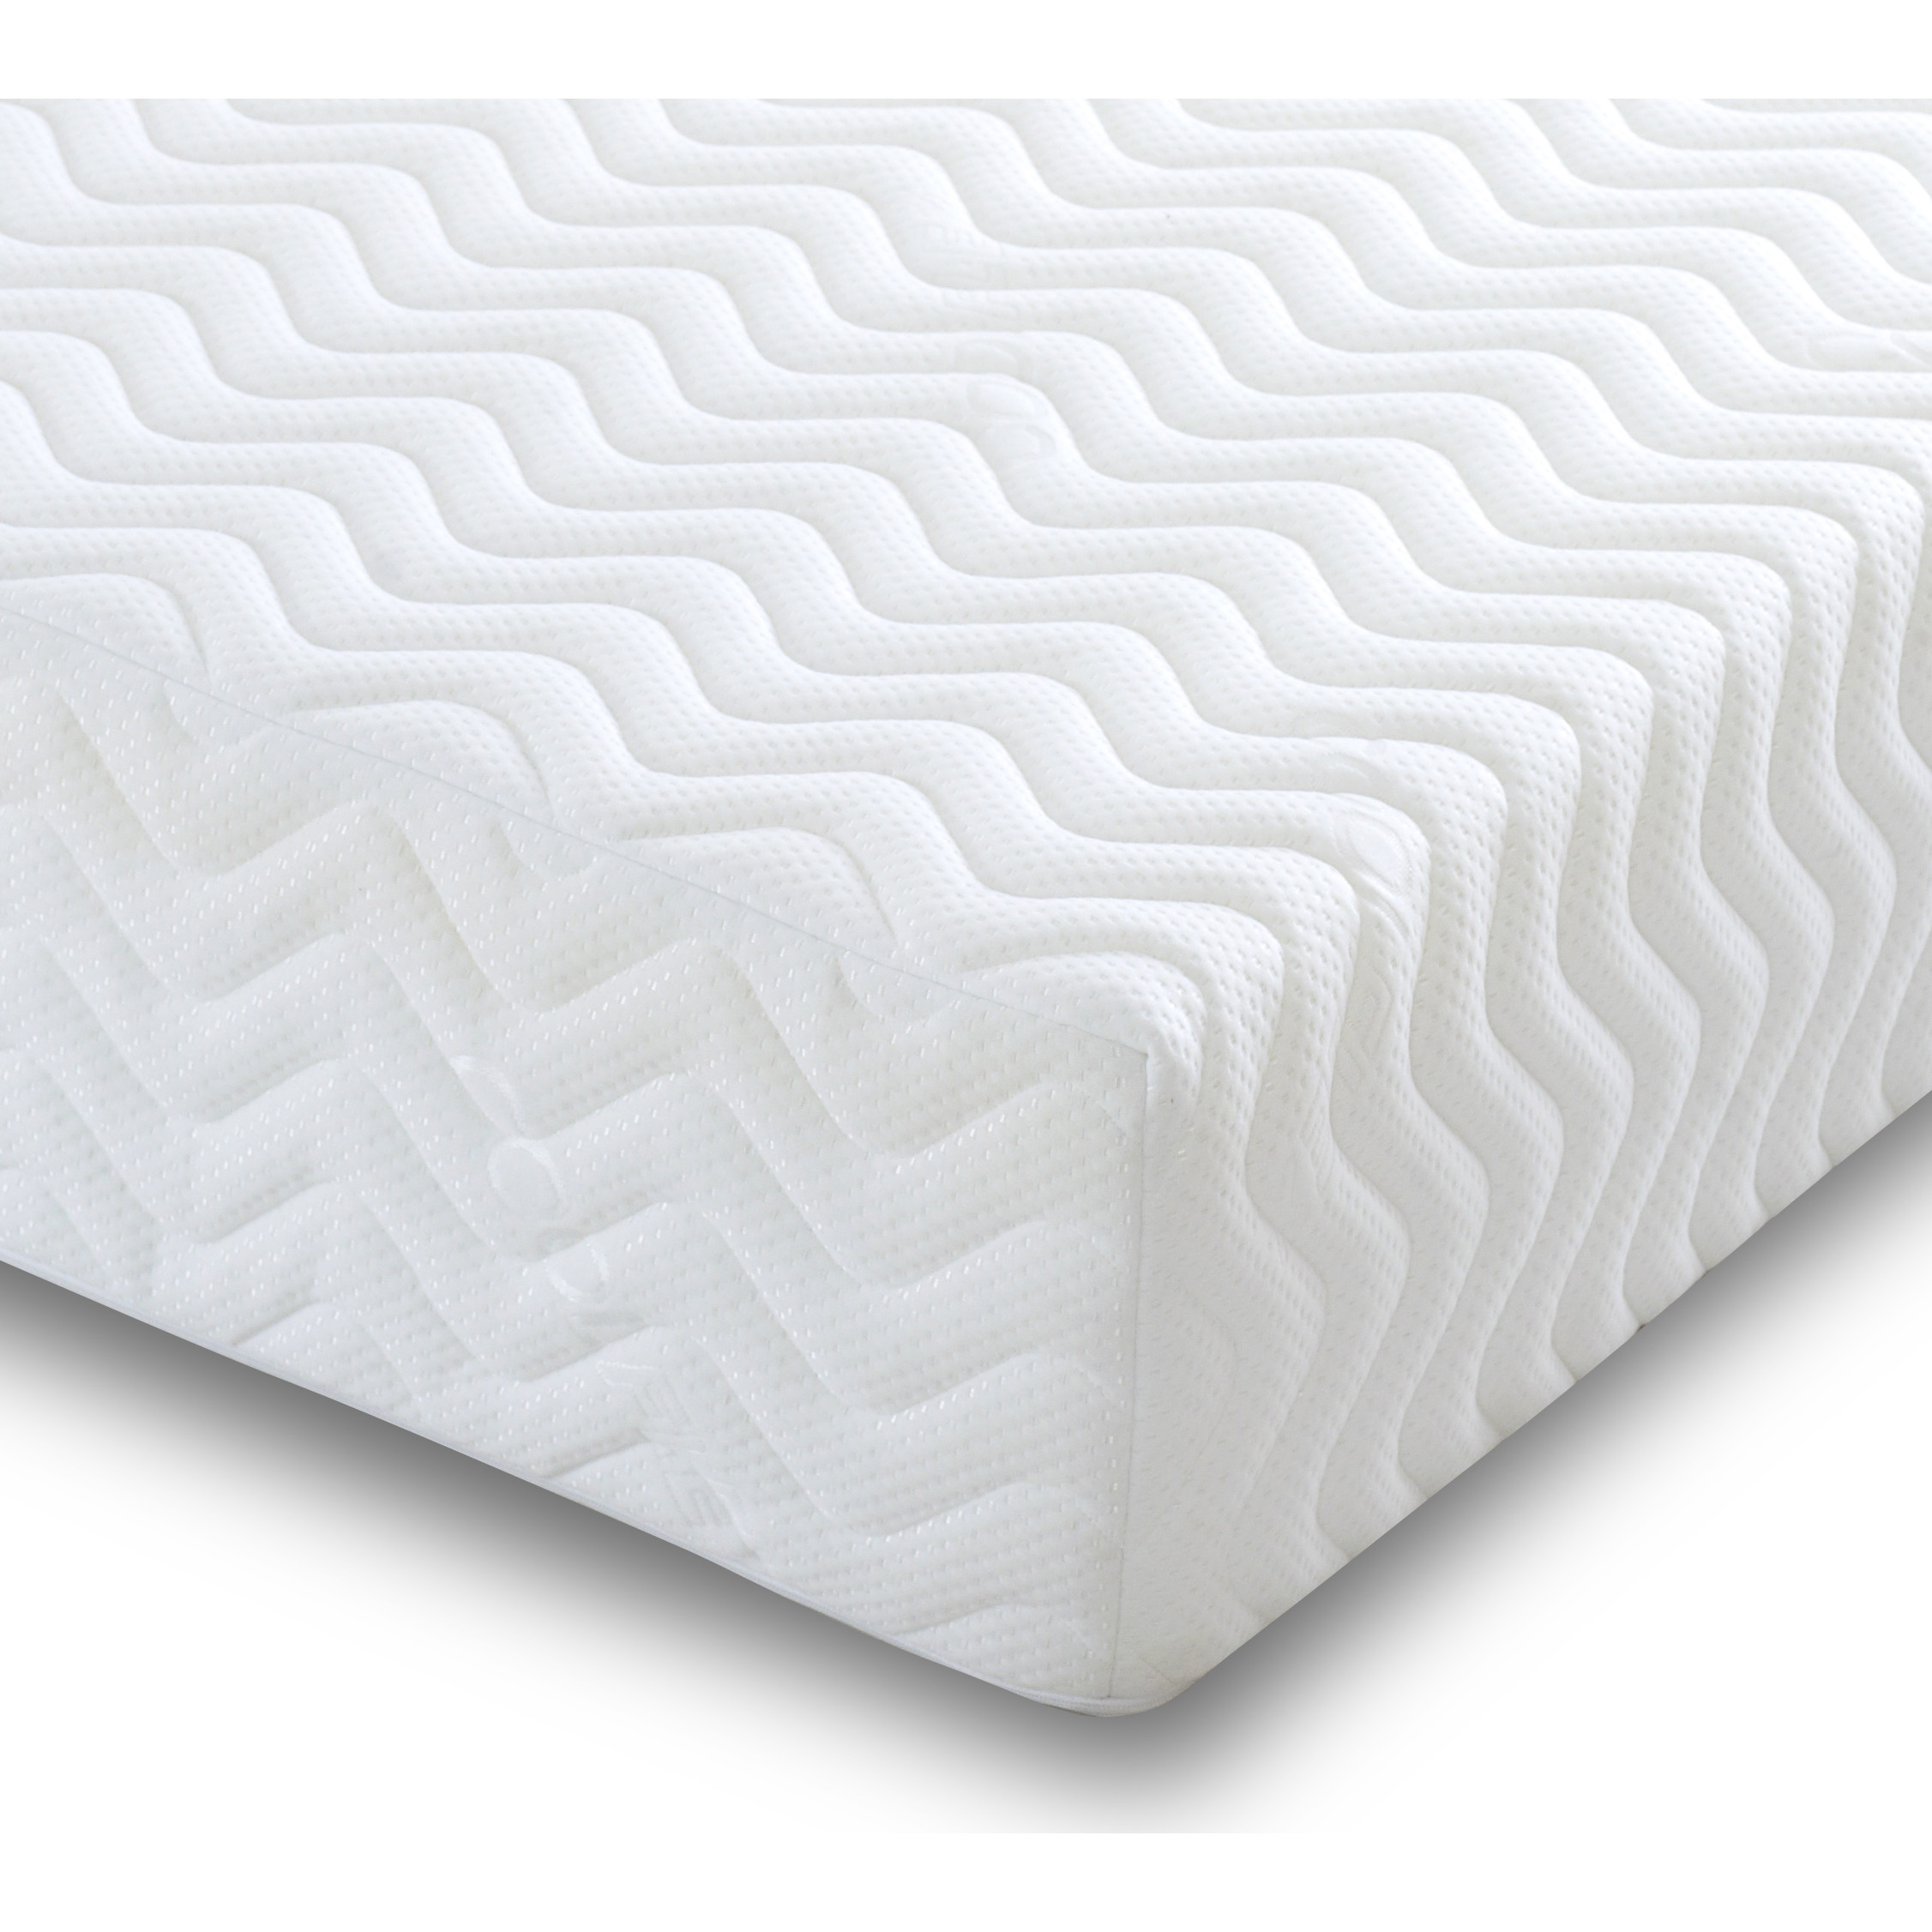 foam mattresses walmart inch memory spa gel sensations mattress twin en canada ip